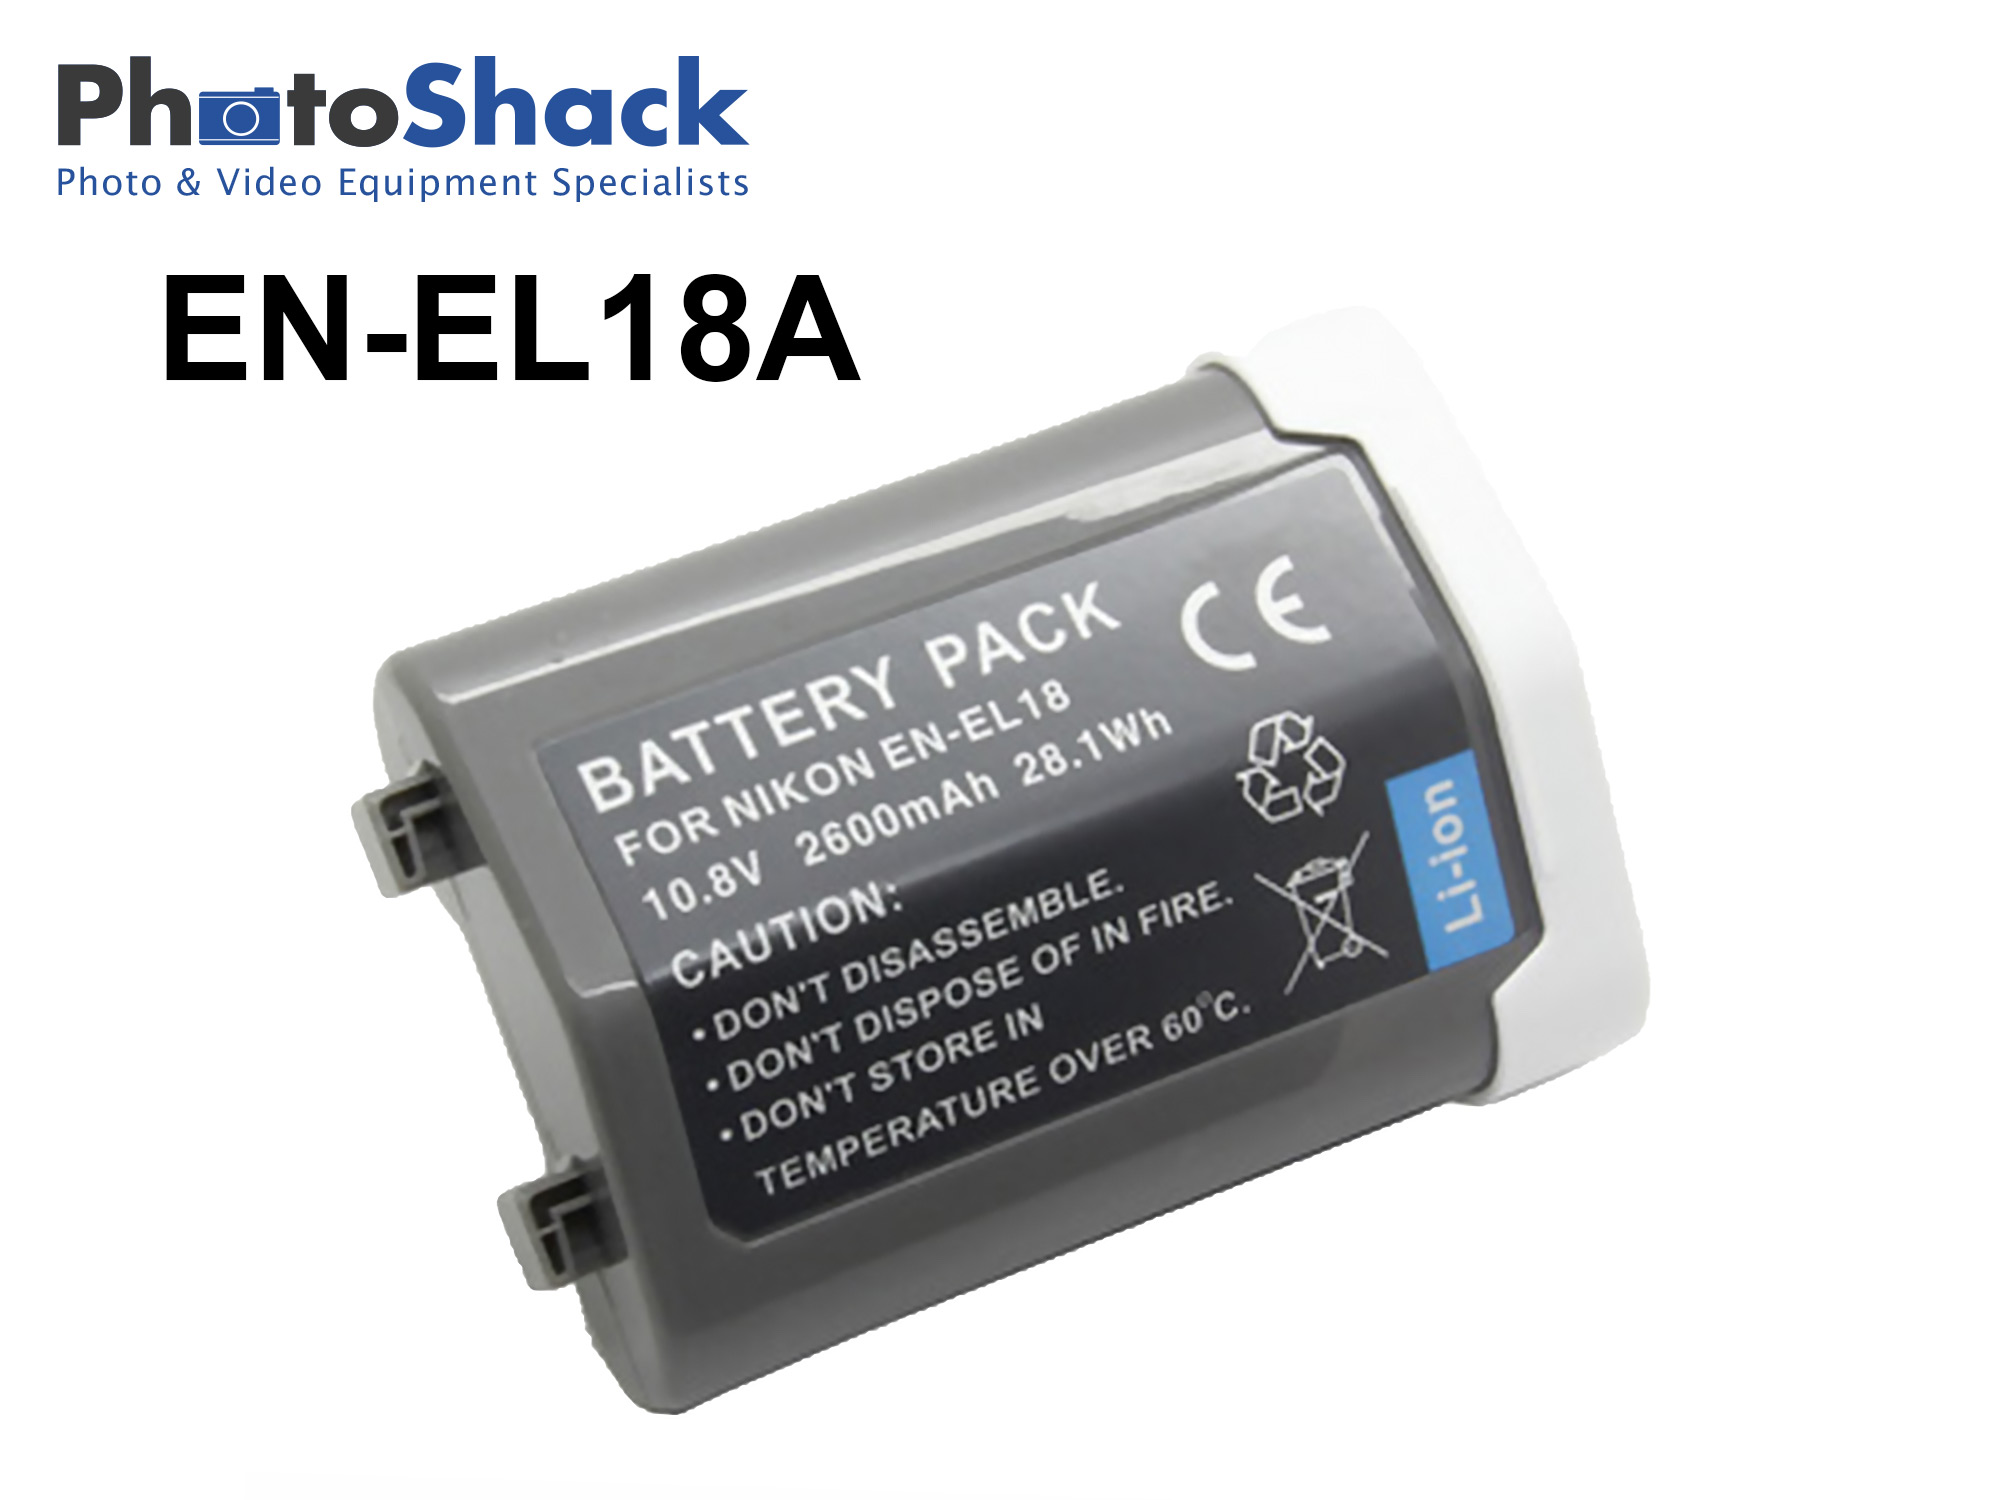 EN-EL18a Battery for Nikon D4 D4s and D5 Cameras